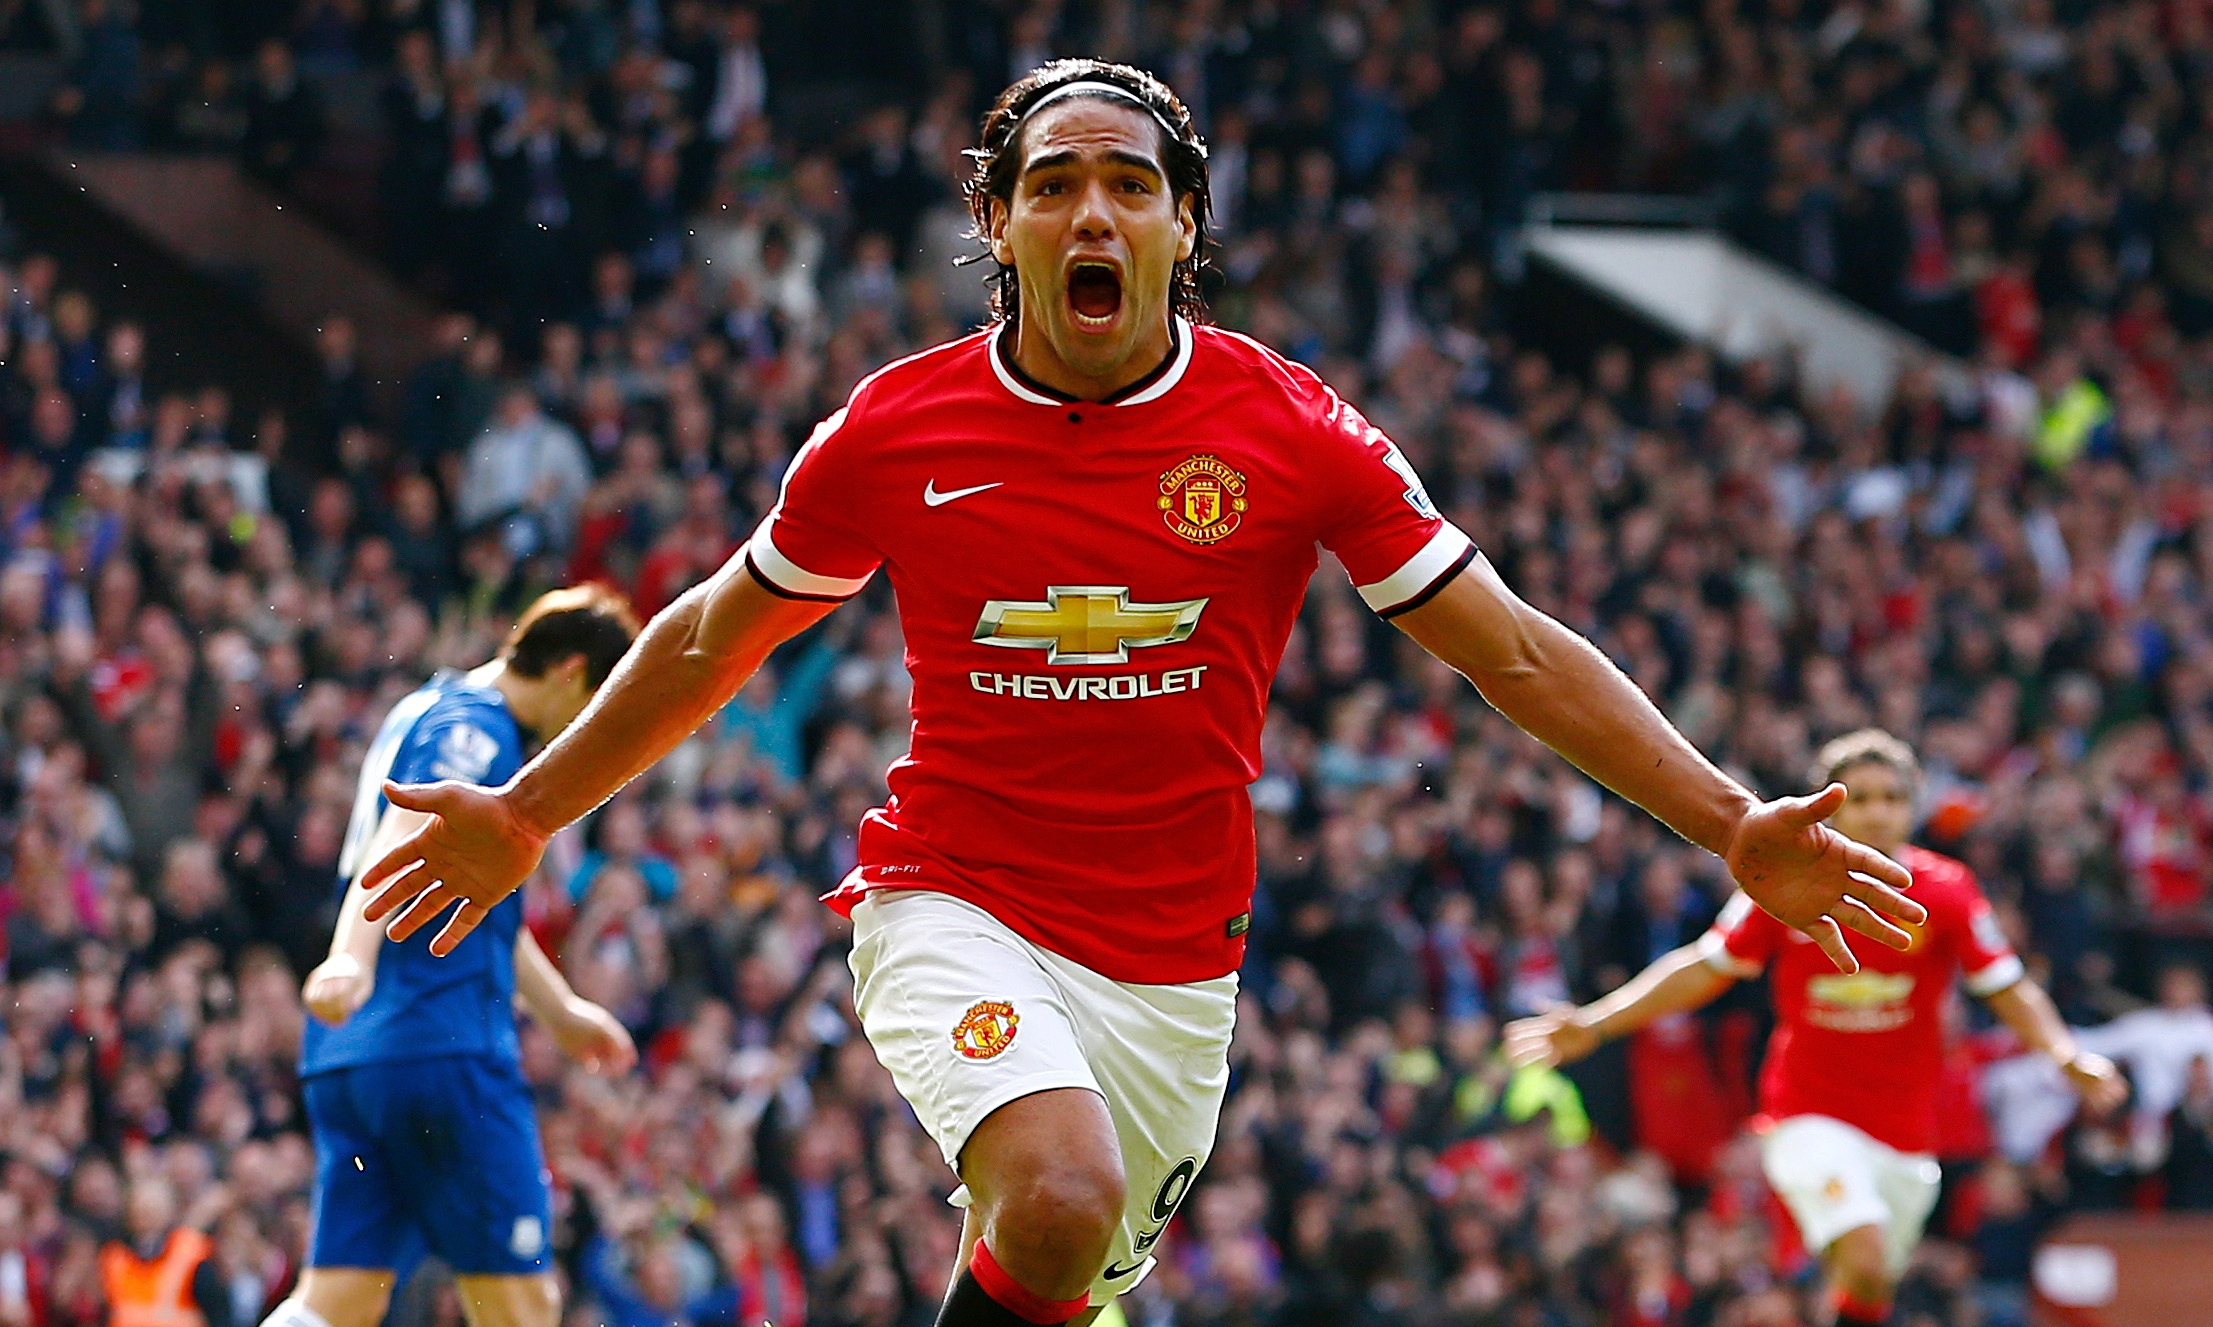 http://static.guim.co.uk/sys-images/Football/Pix/pictures/2014/10/5/1412513205570/Radamel-Falcao-celebrates-012.jpg